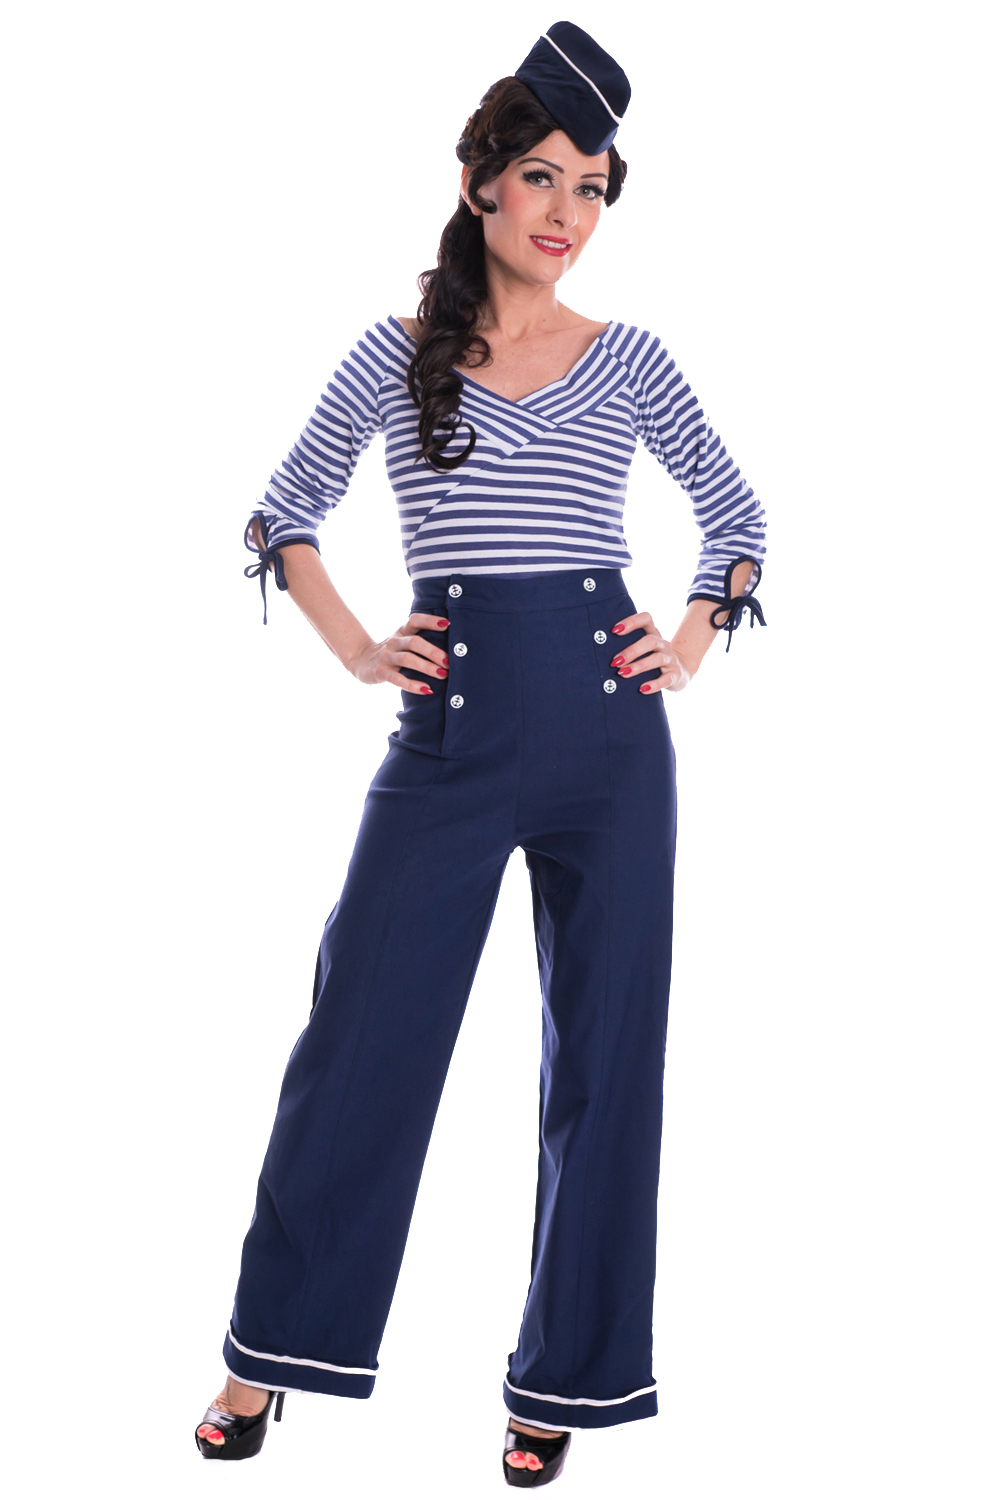 Sailor MARLENE Hose Retro Matrosen rockabilly Marlenehose